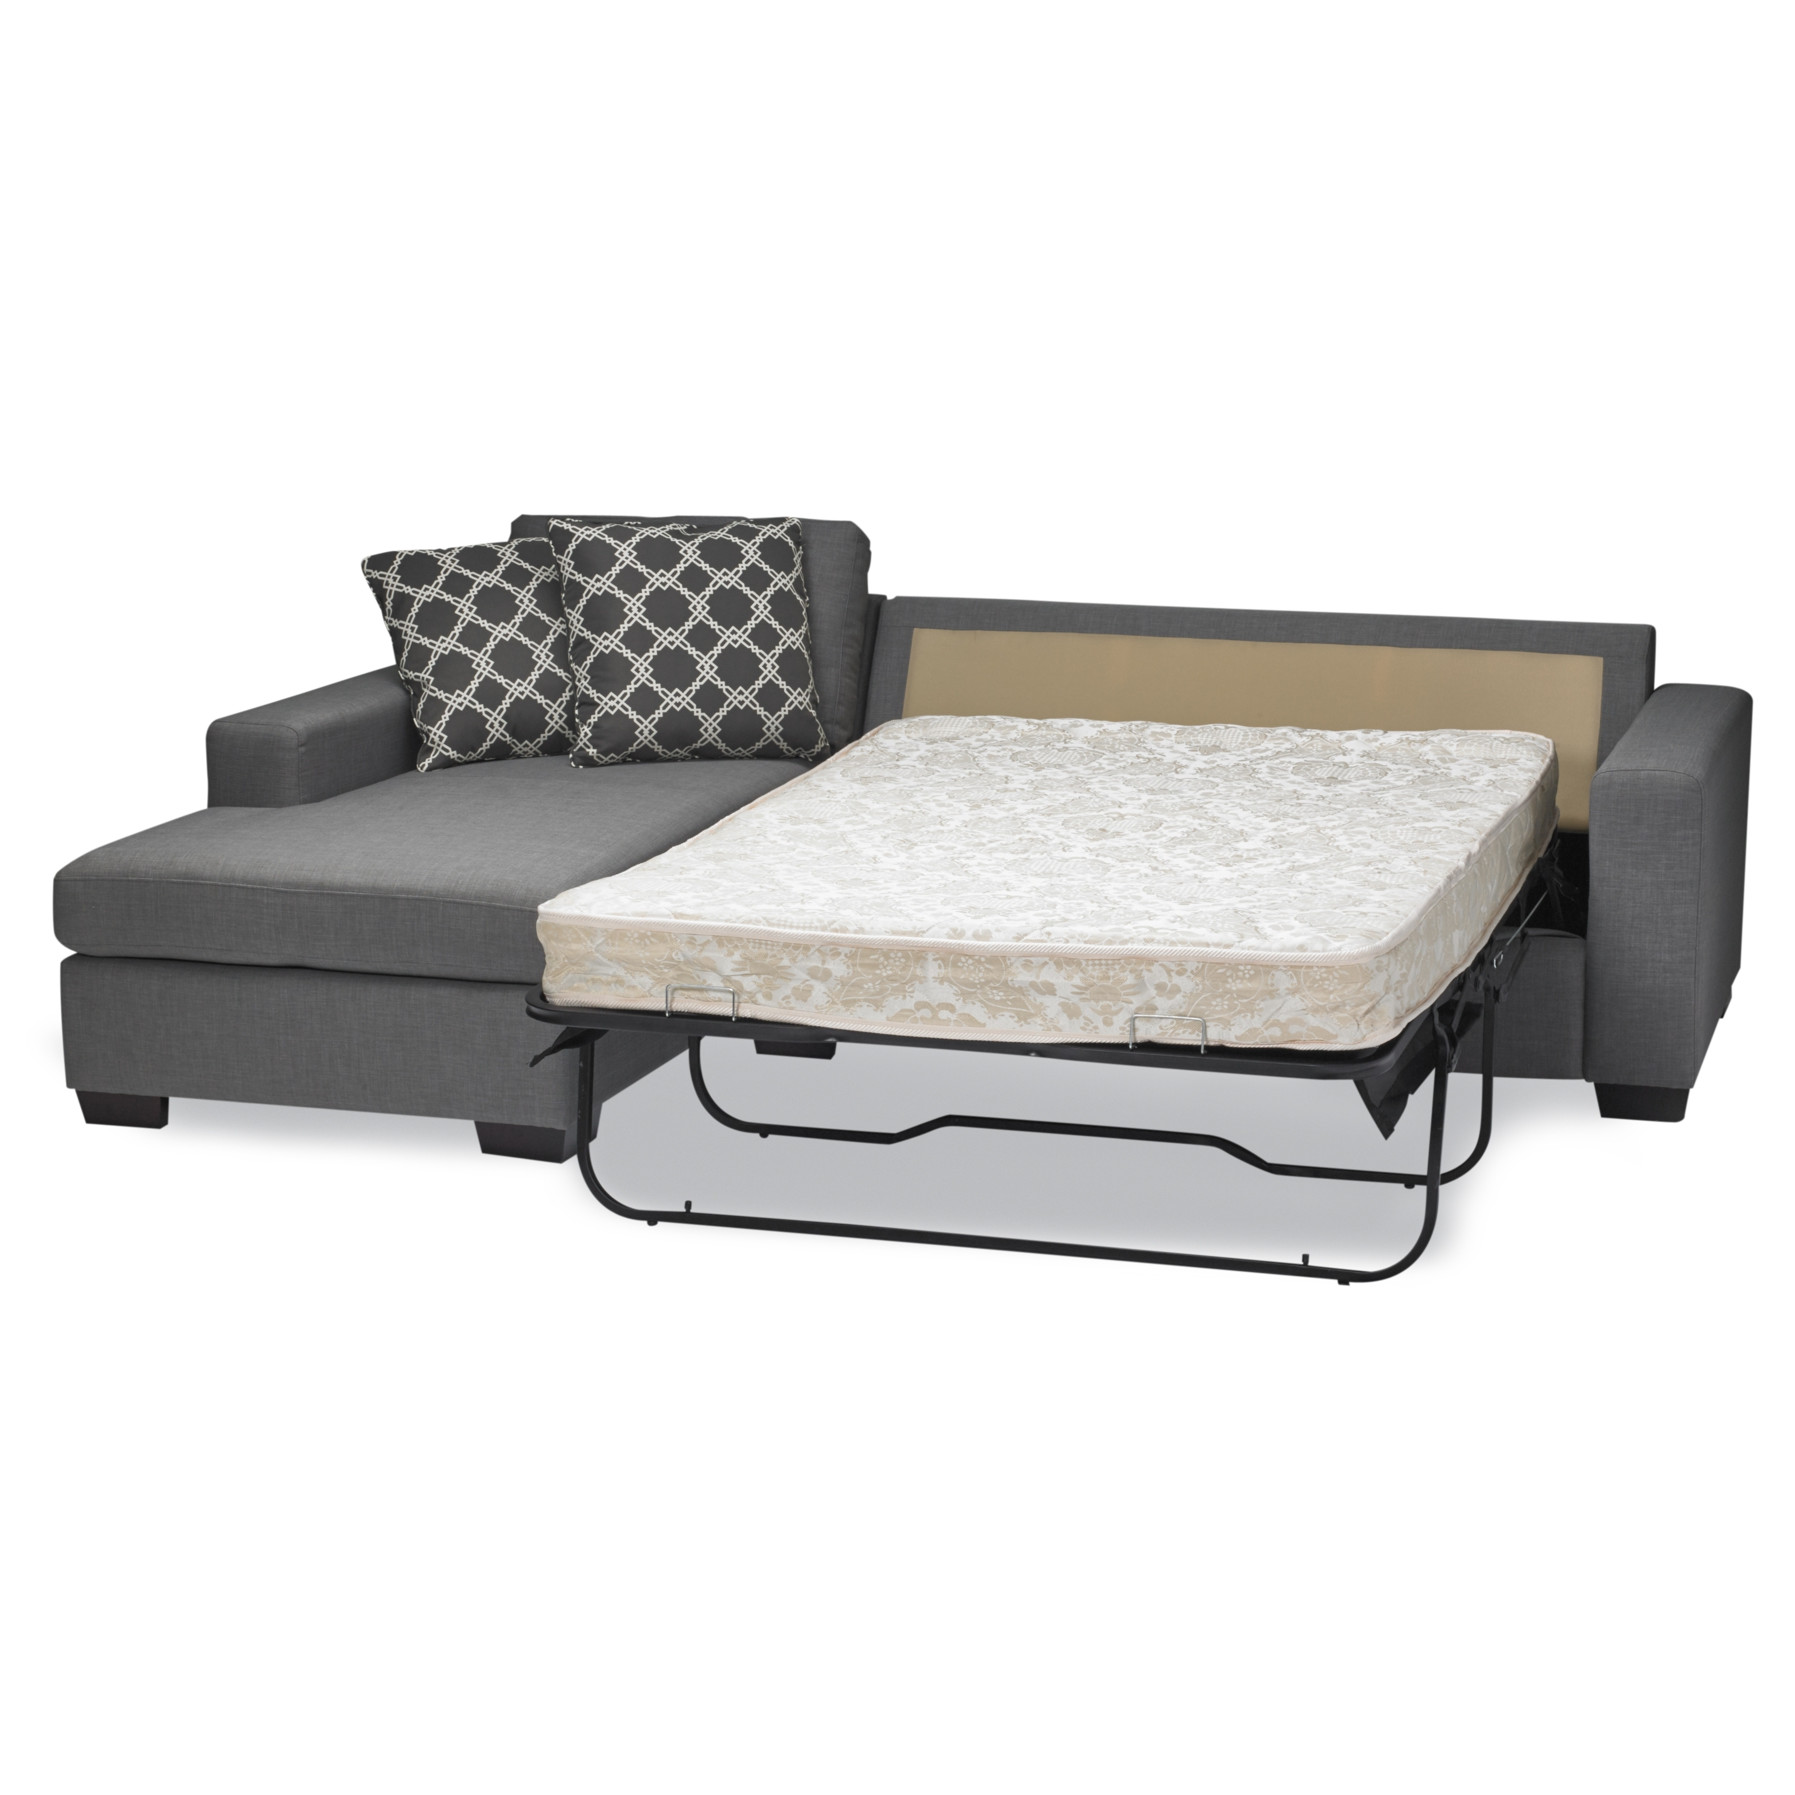 3 Piece Sectional Sleeper Sofa | Sectional Sleeper Sofa | Sectional Sofas With Recliners And Sleeper